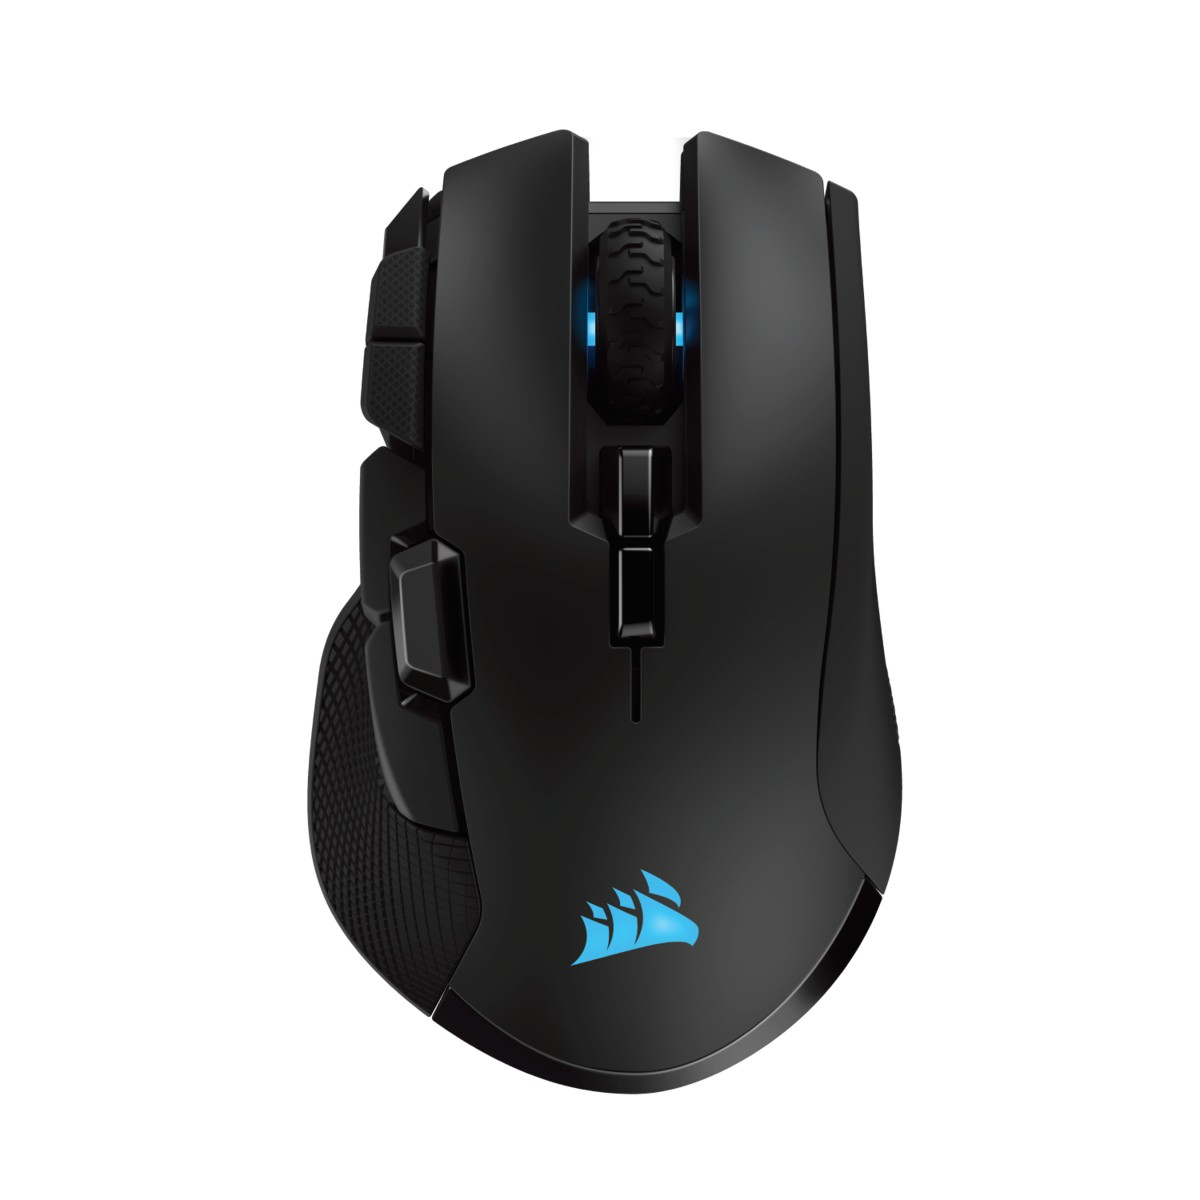 RATON CORSAIR USB GAMING IRONCLAW RGB WIRELESS LED OPTICO NEGRO CH-9317011-EU